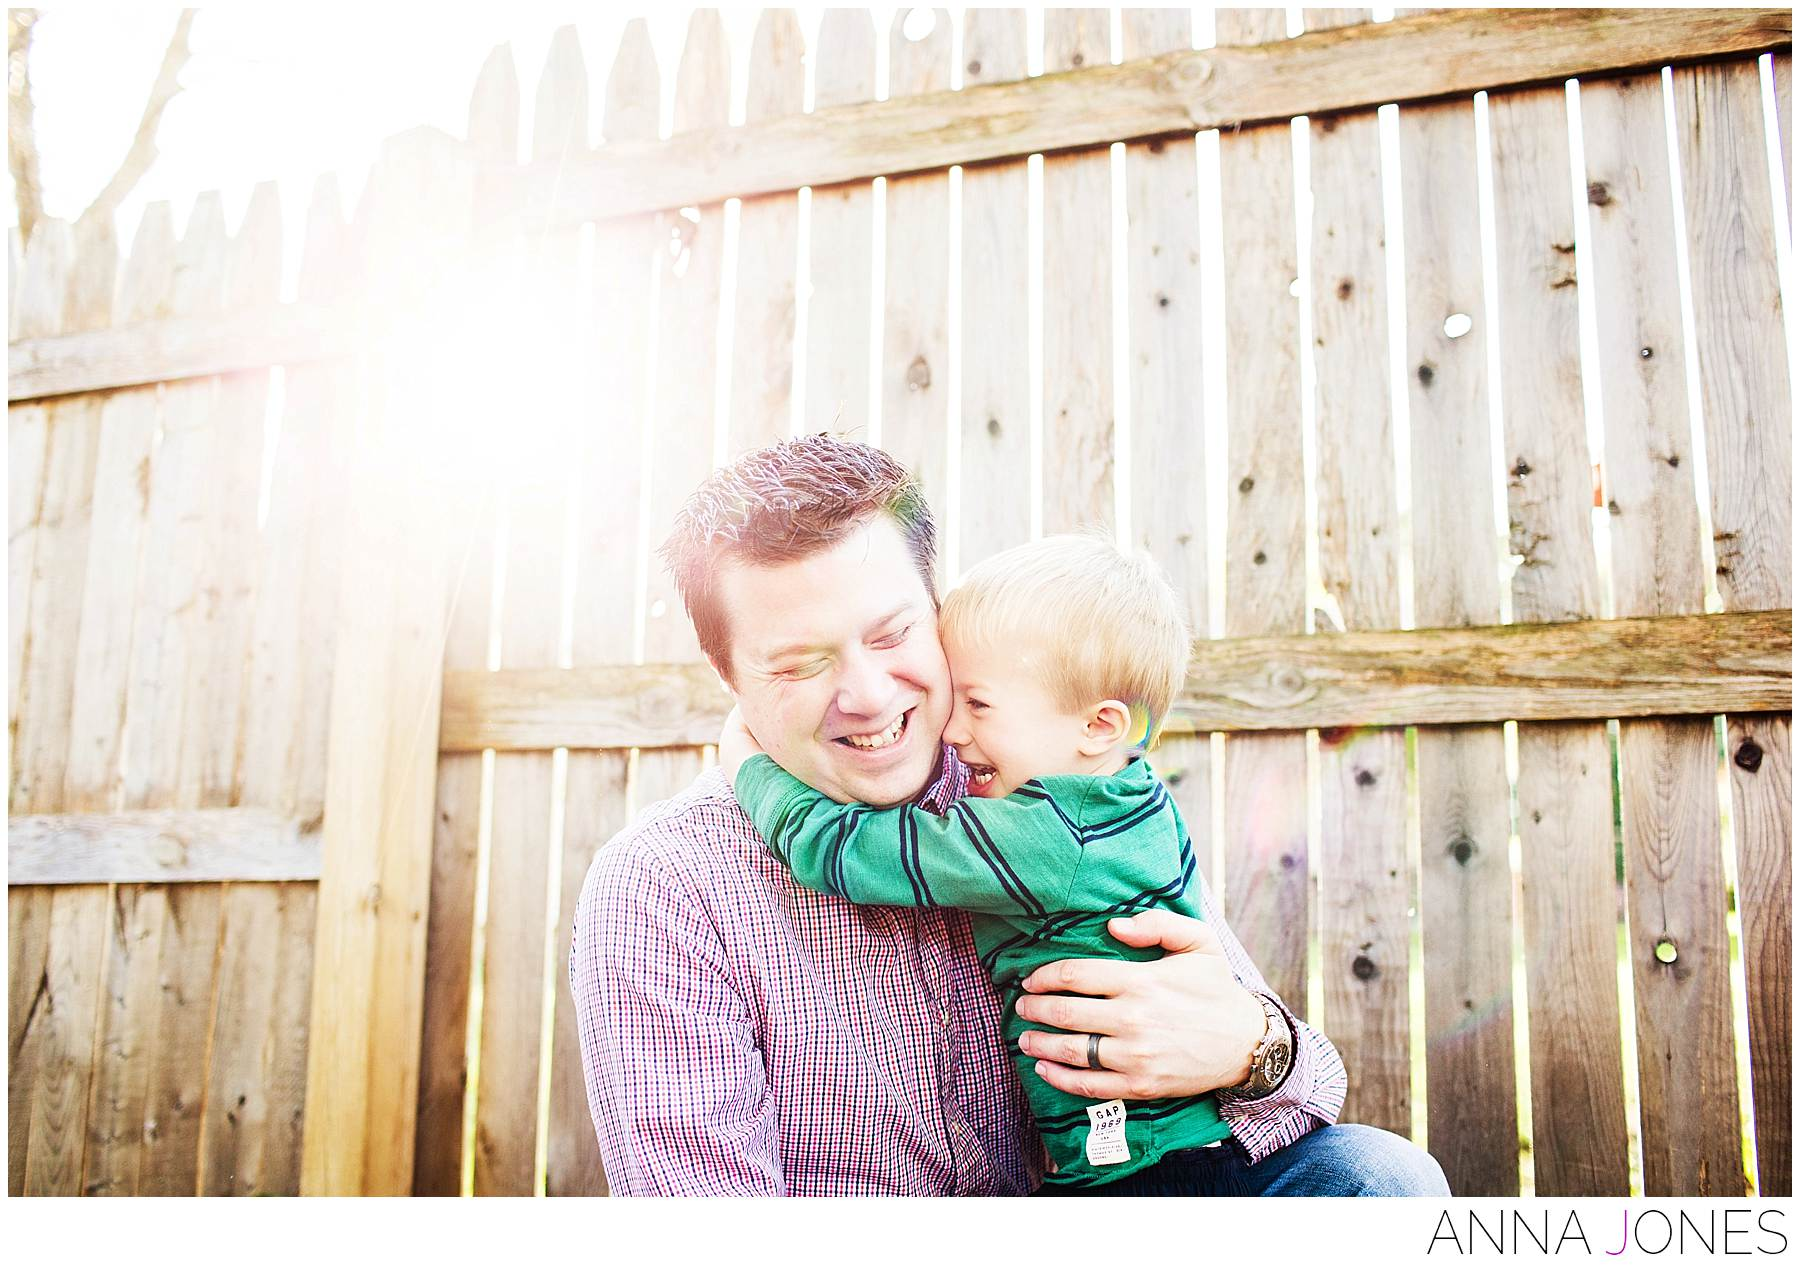 By Anna Jones Family + Lifestyle Photography